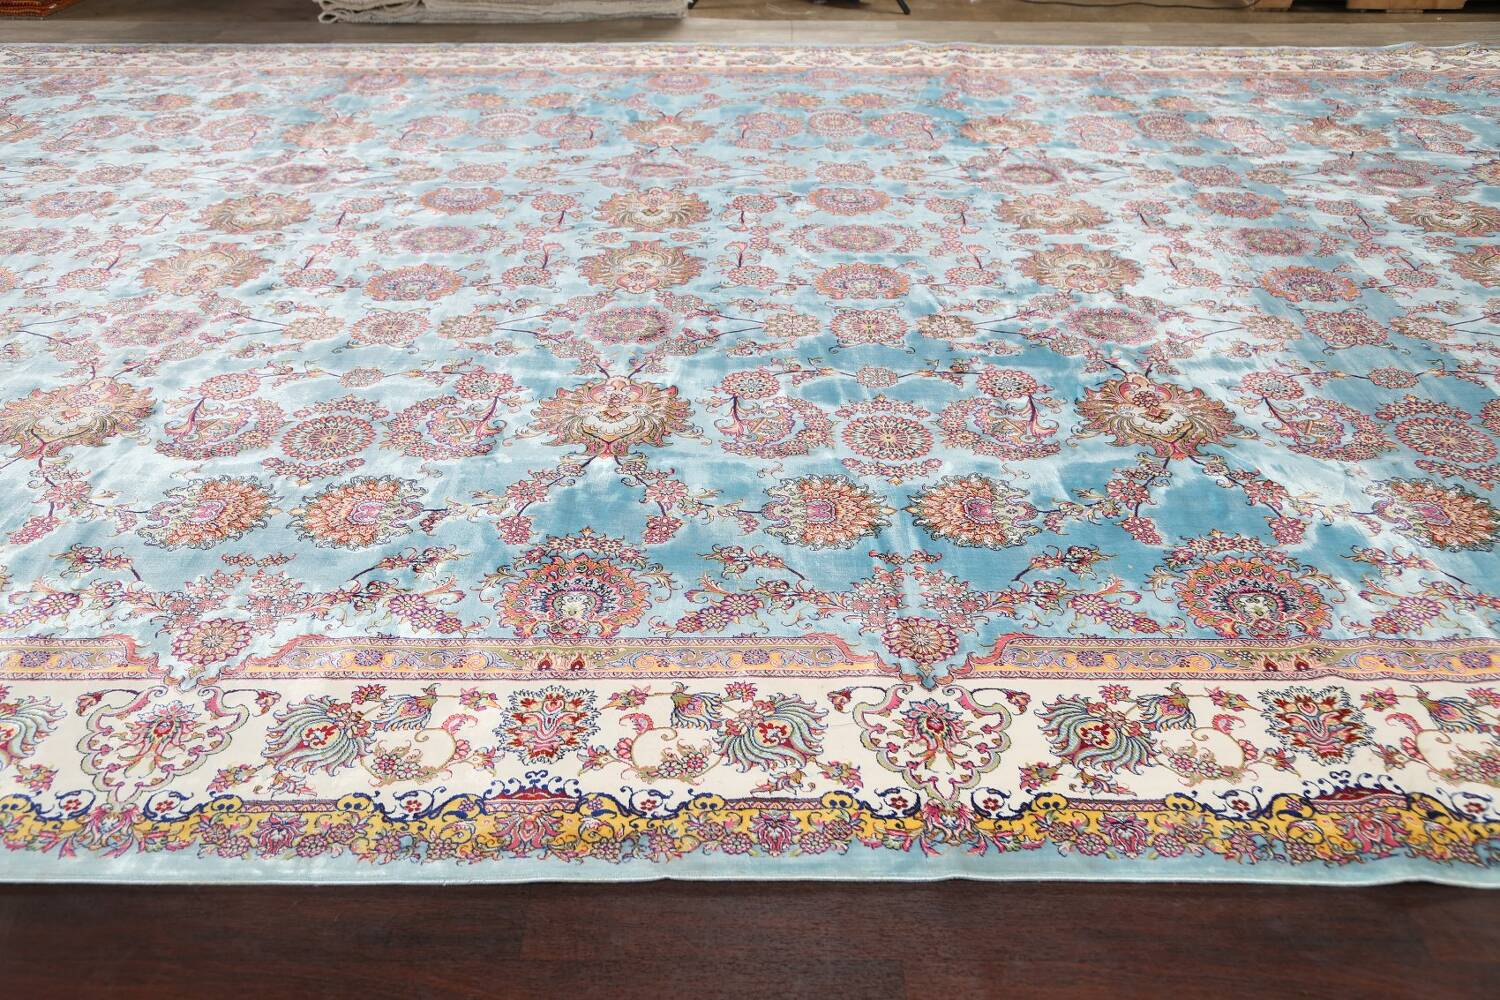 All-Over Floral Silk Large Tabriz Persian Area Rug 13x27 image 15